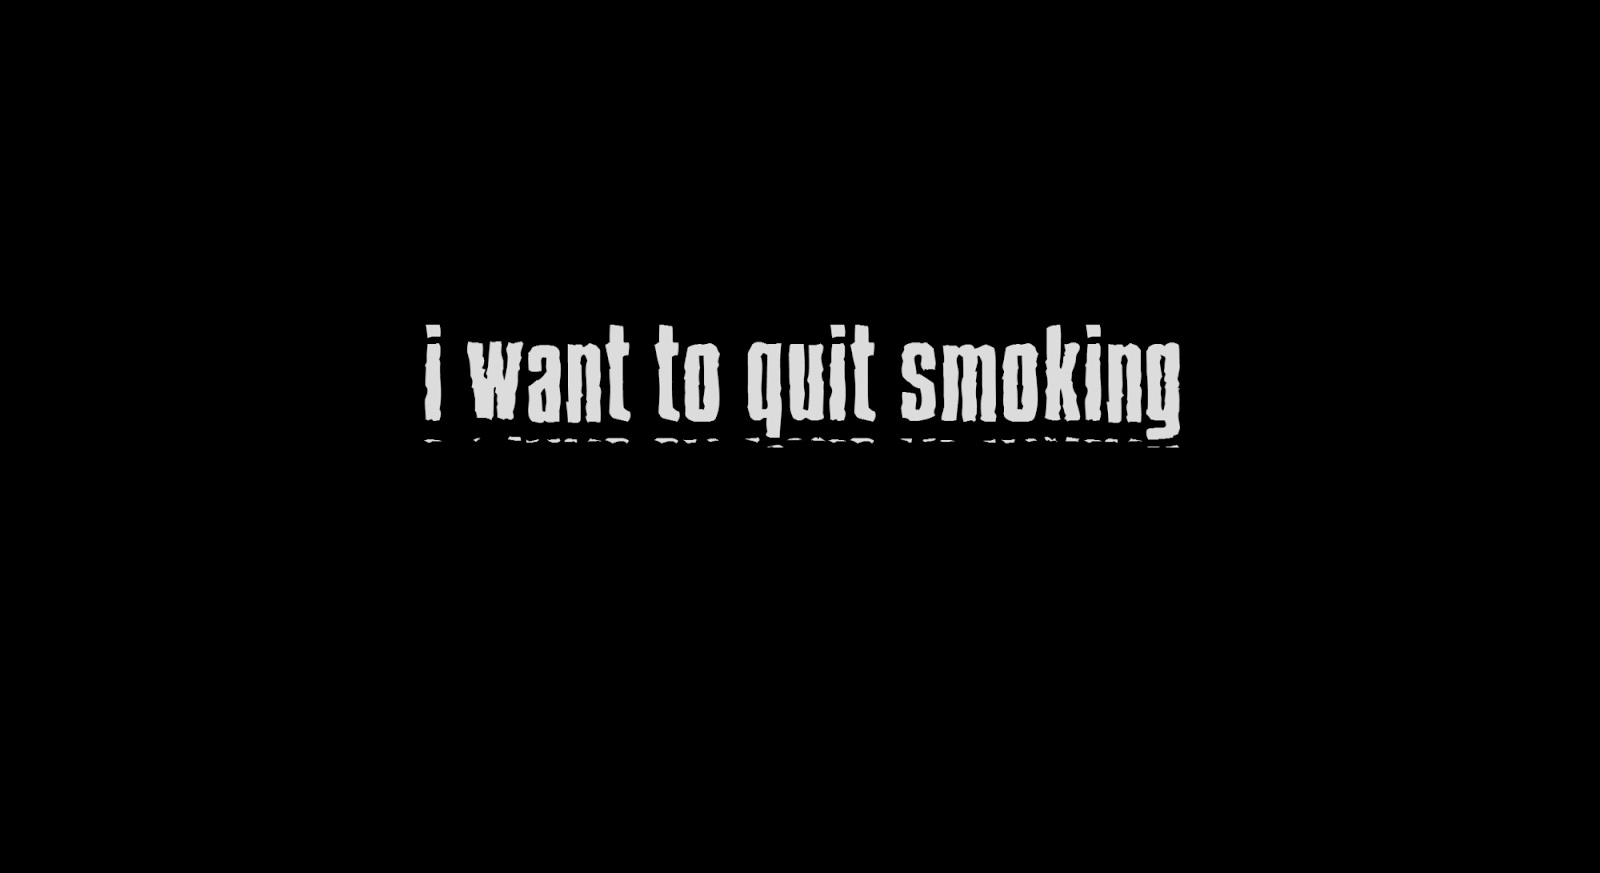 I want to quit smoking